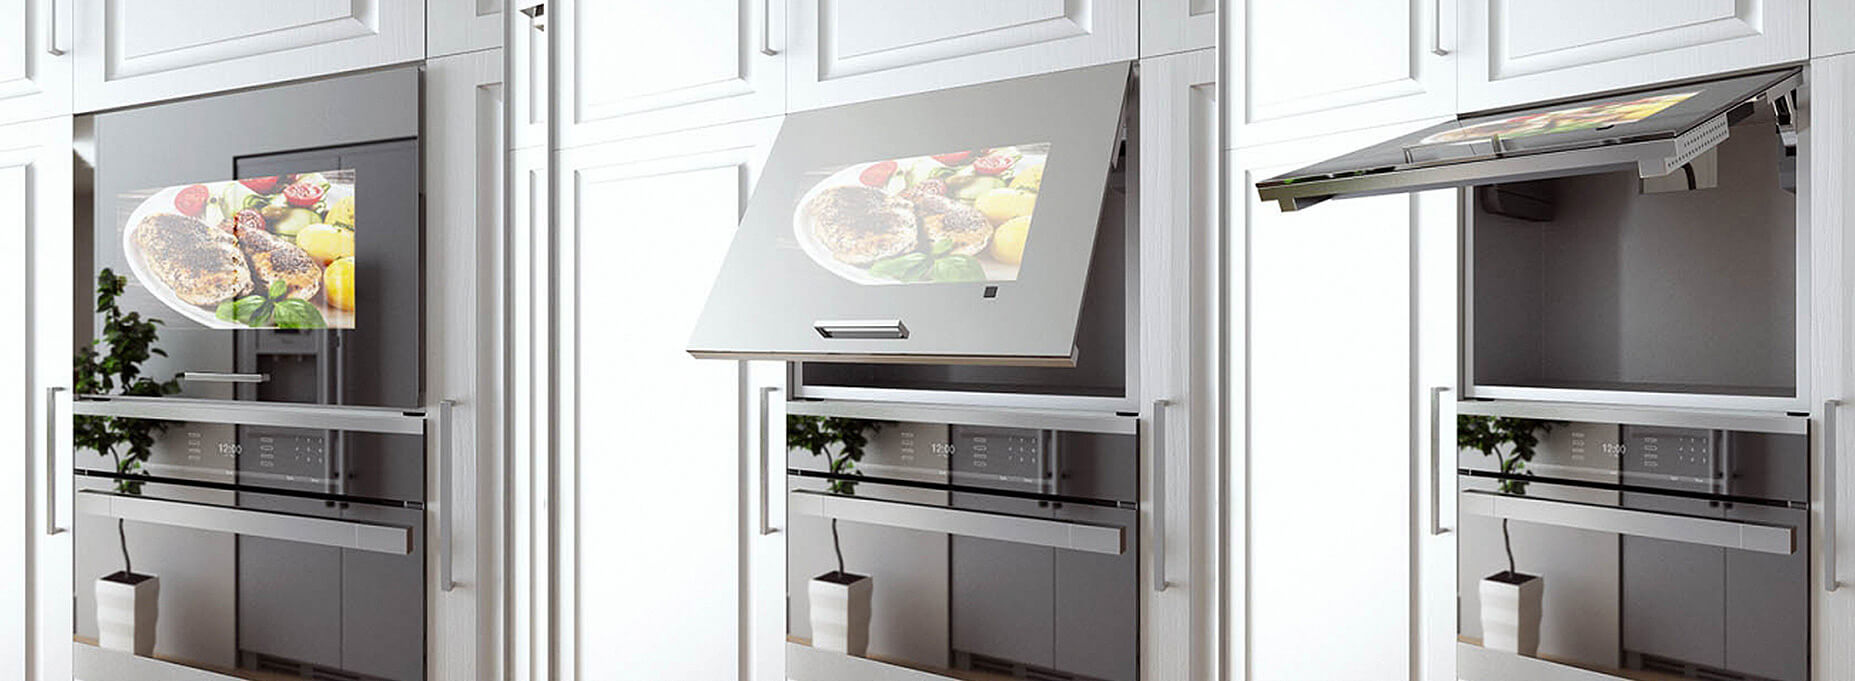 Smart oven cabinet TV, bake while watching your favorite TV shows and movies.